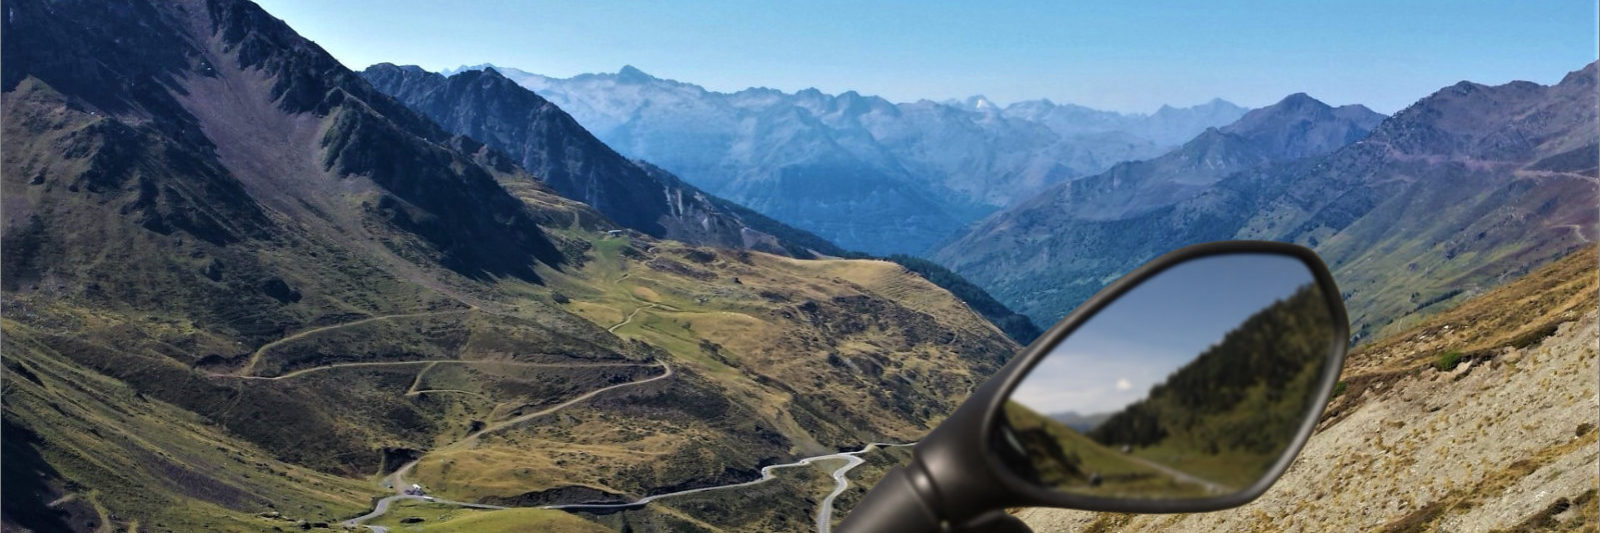 Bike Tours in the Pyrenees